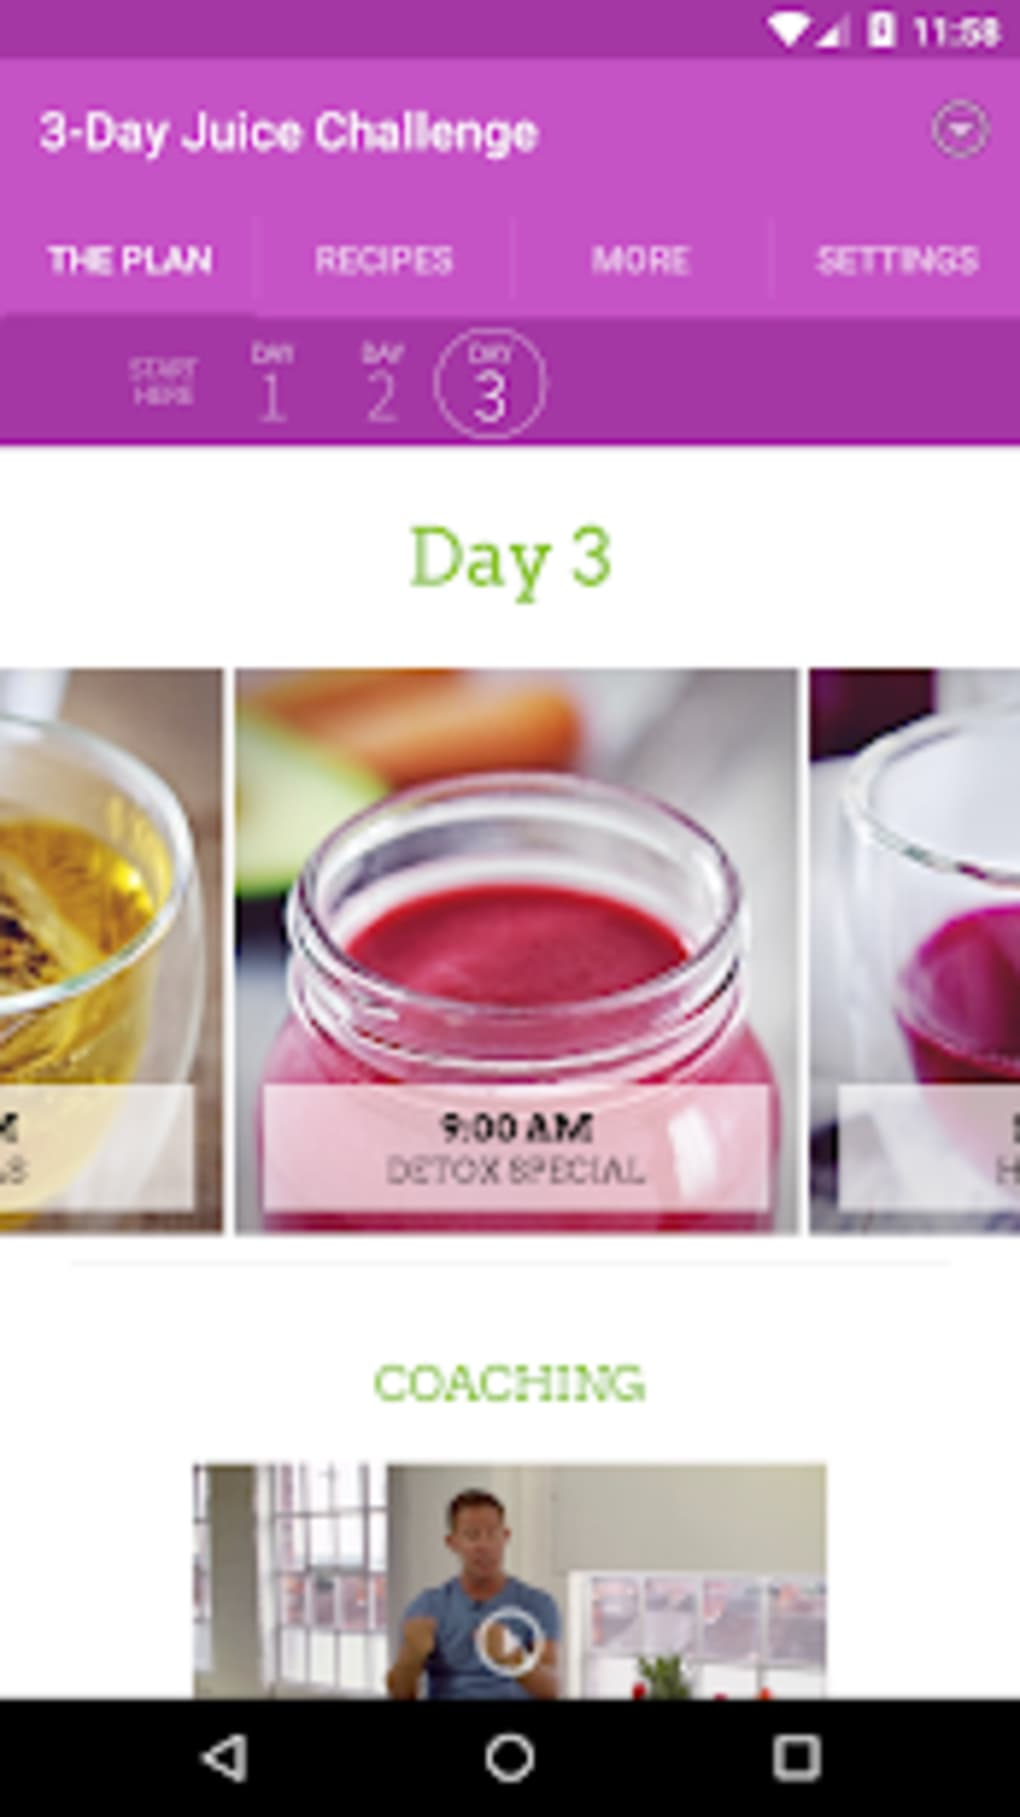 Jasons 3-Day Juice Challenge for Android - Download